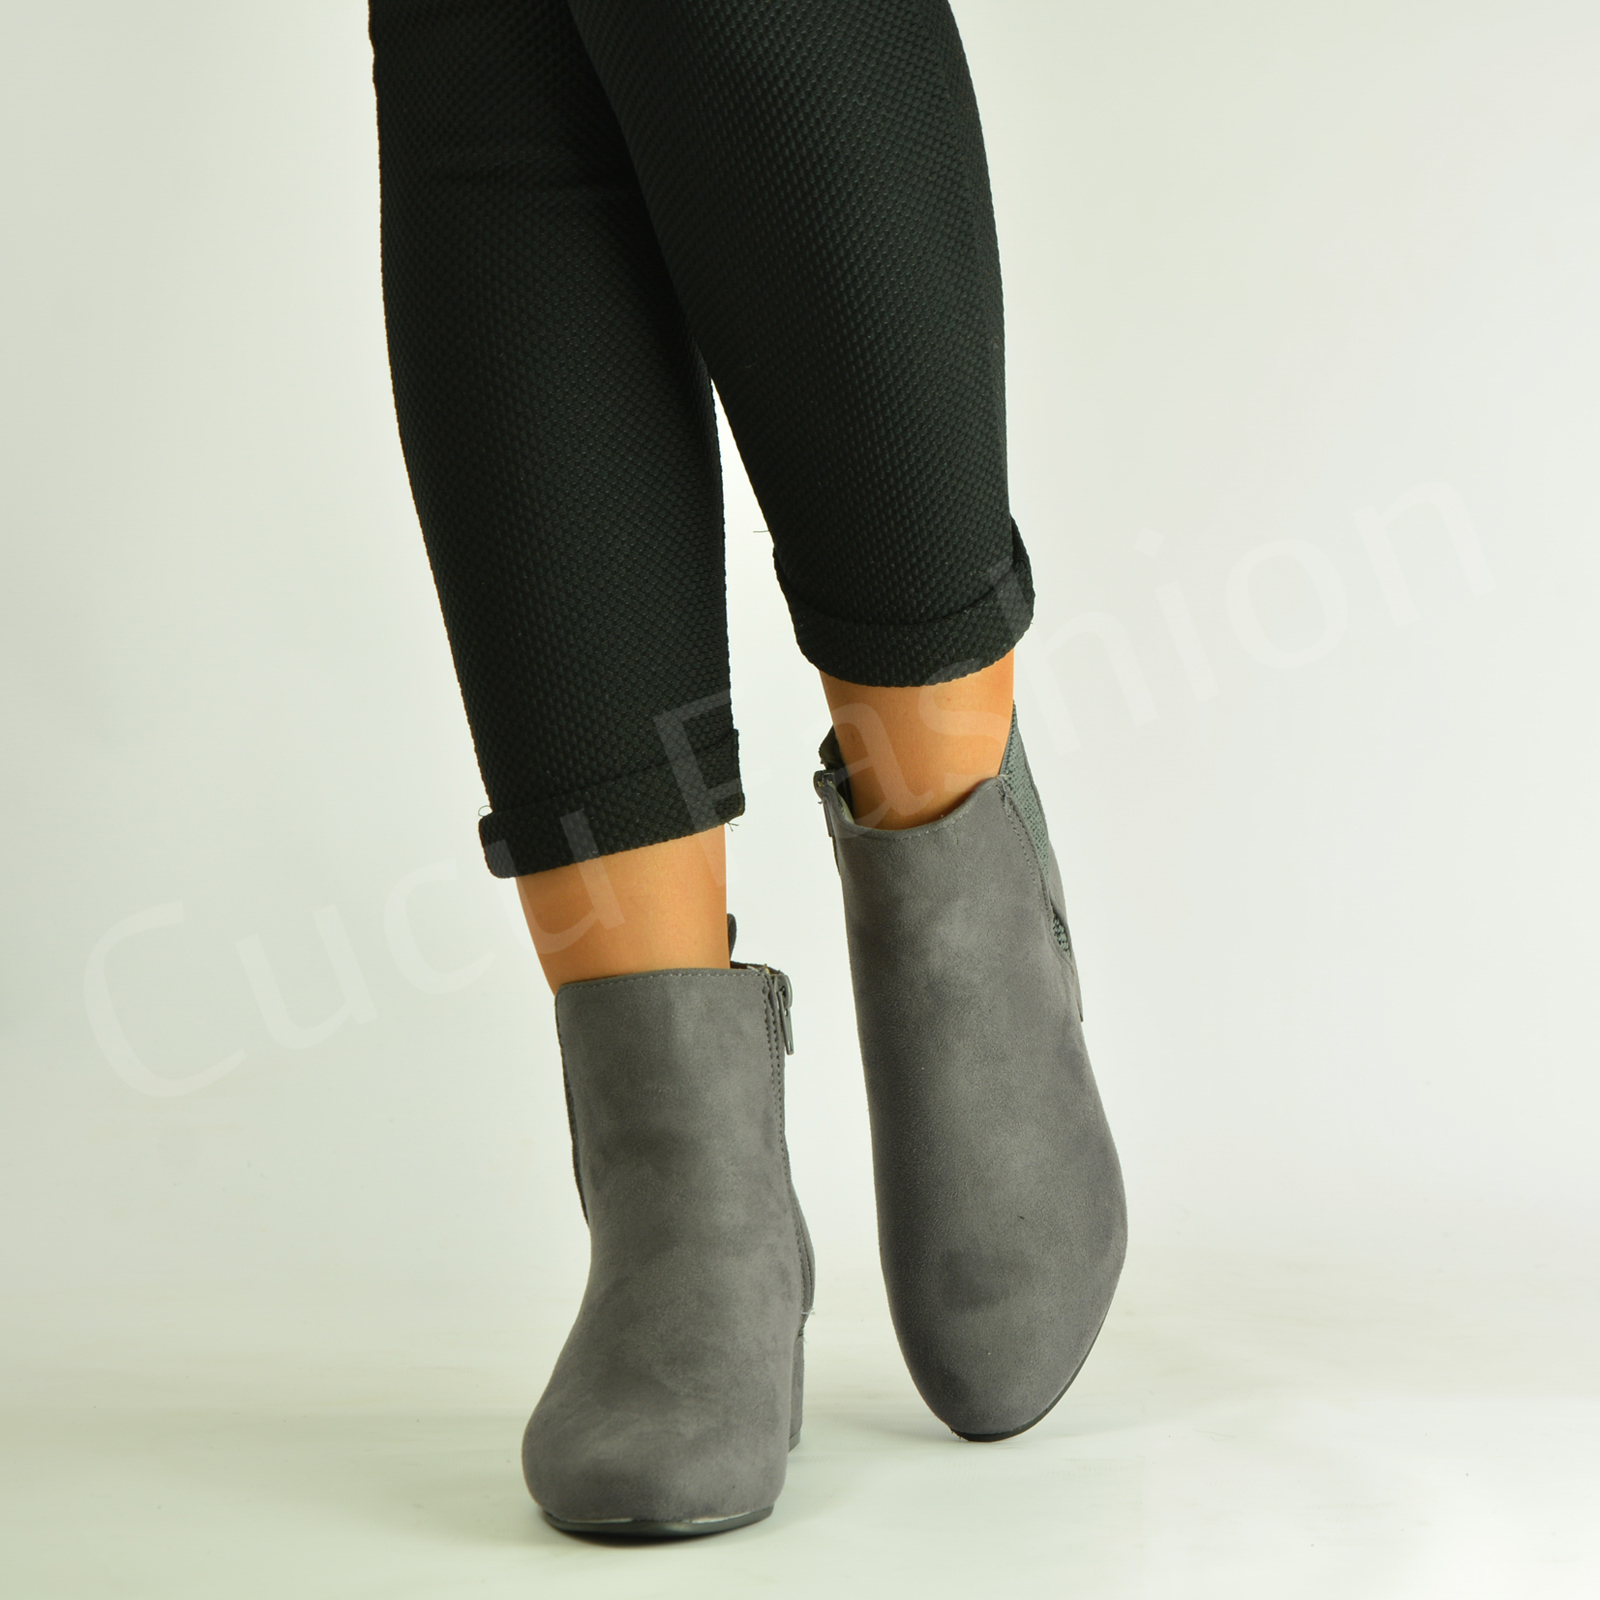 New-Womens-Ladies-Low-Block-Heel-Ankle-Boots-Zip-Winter-Casual-Shoes-Size-Uk-3-8